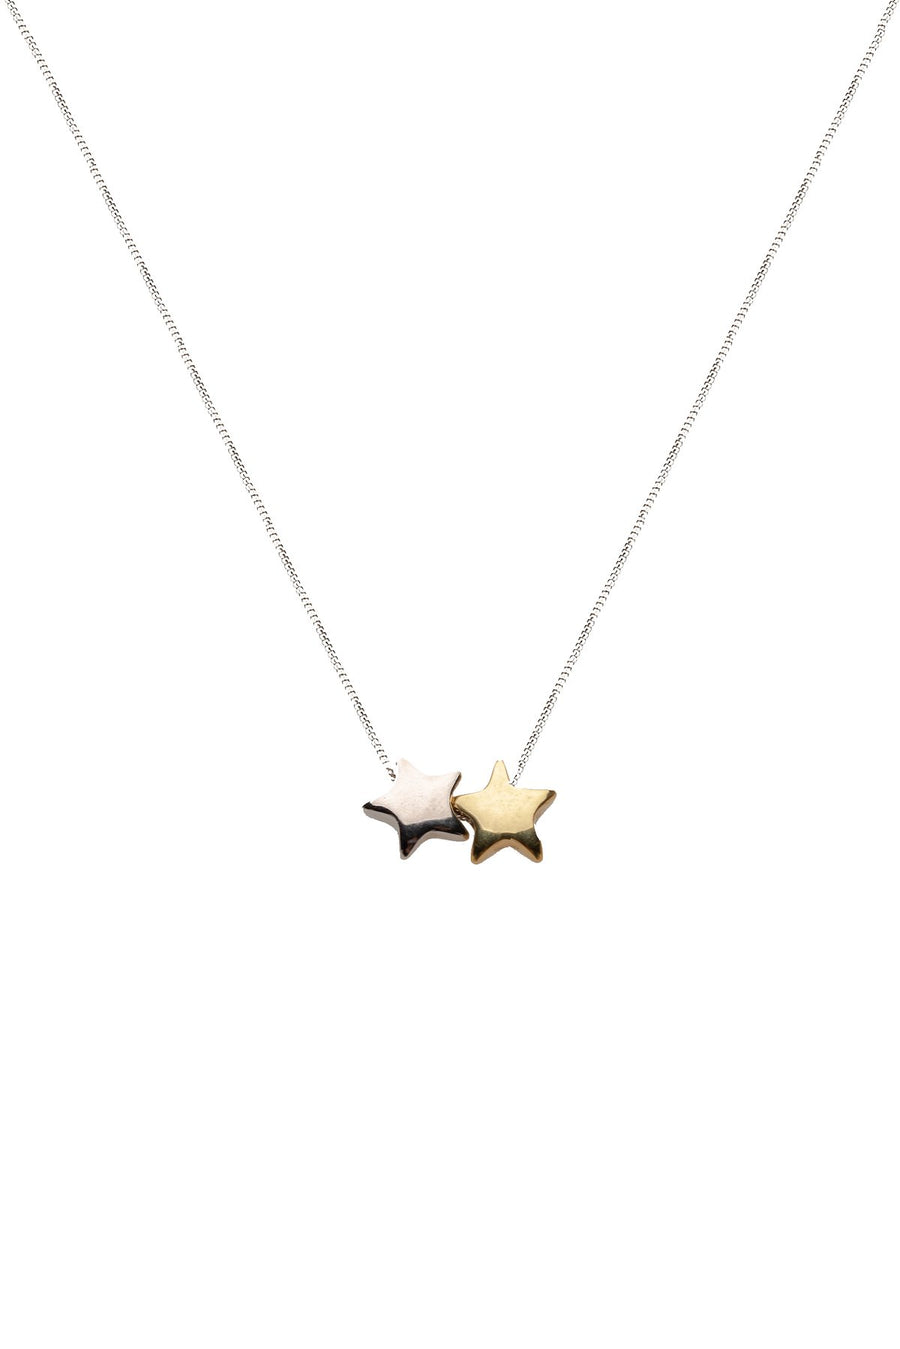 Double Star Necklace - ninimolnar